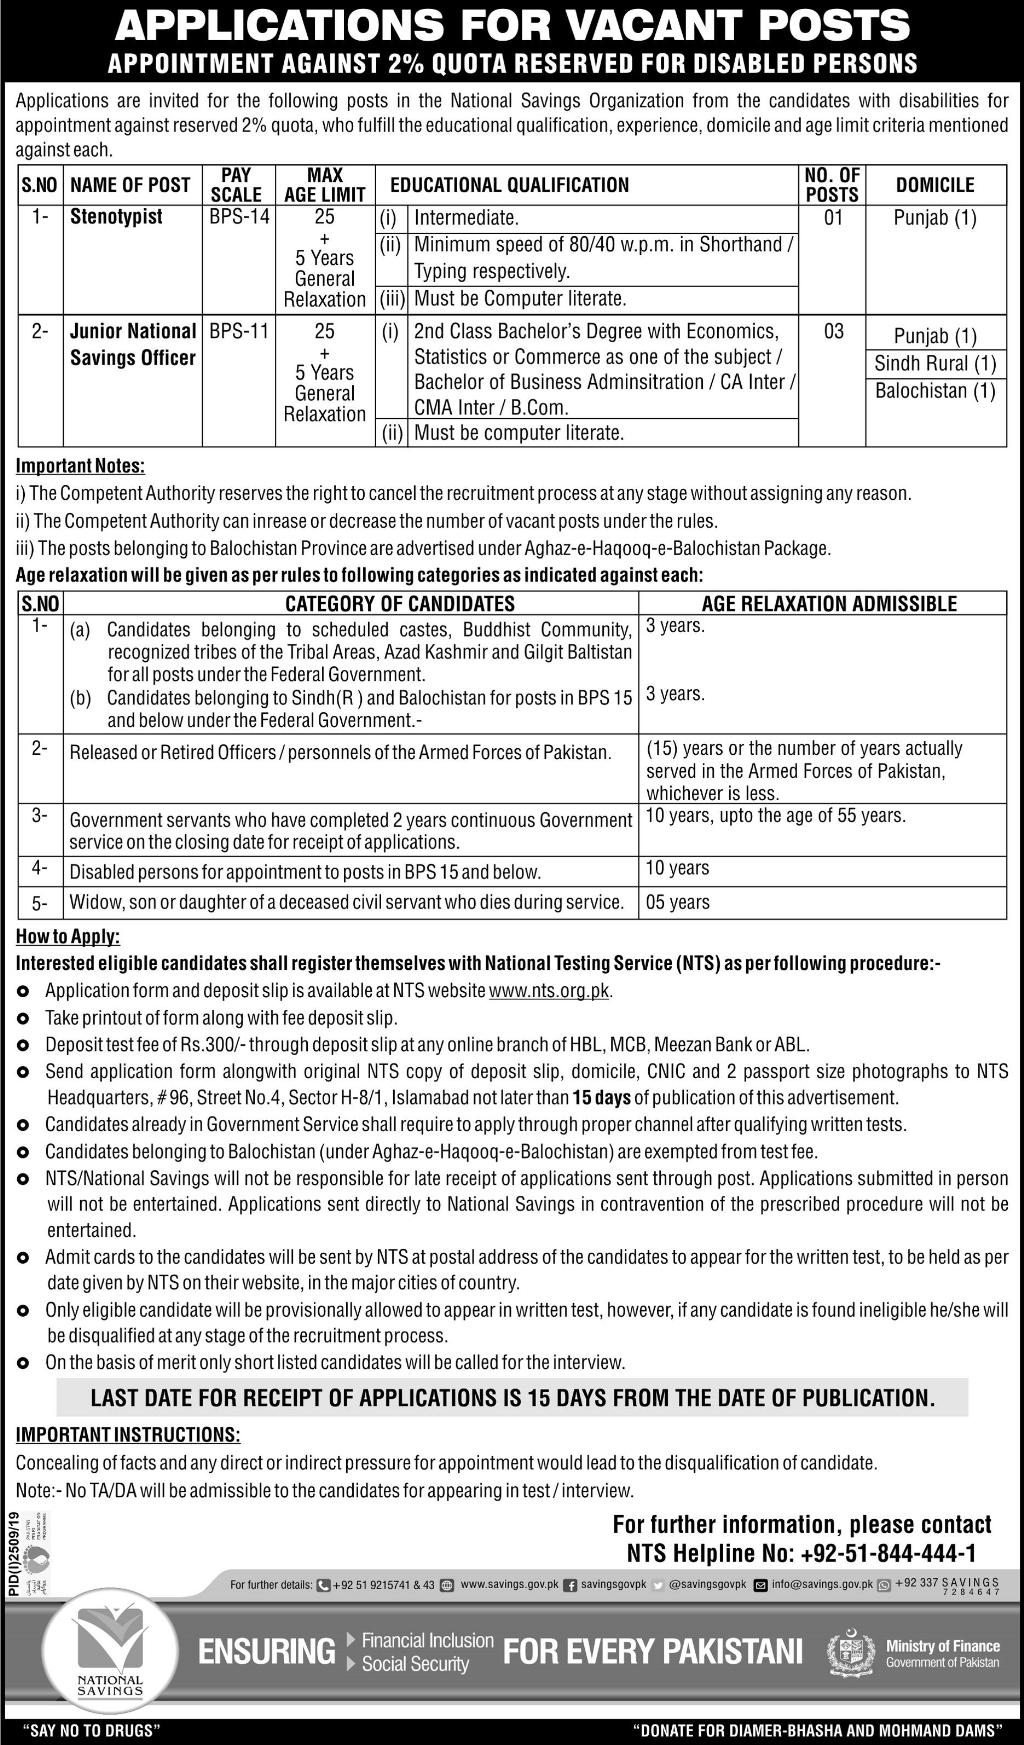 National Savings Organization of Pakistan Latest Jobs